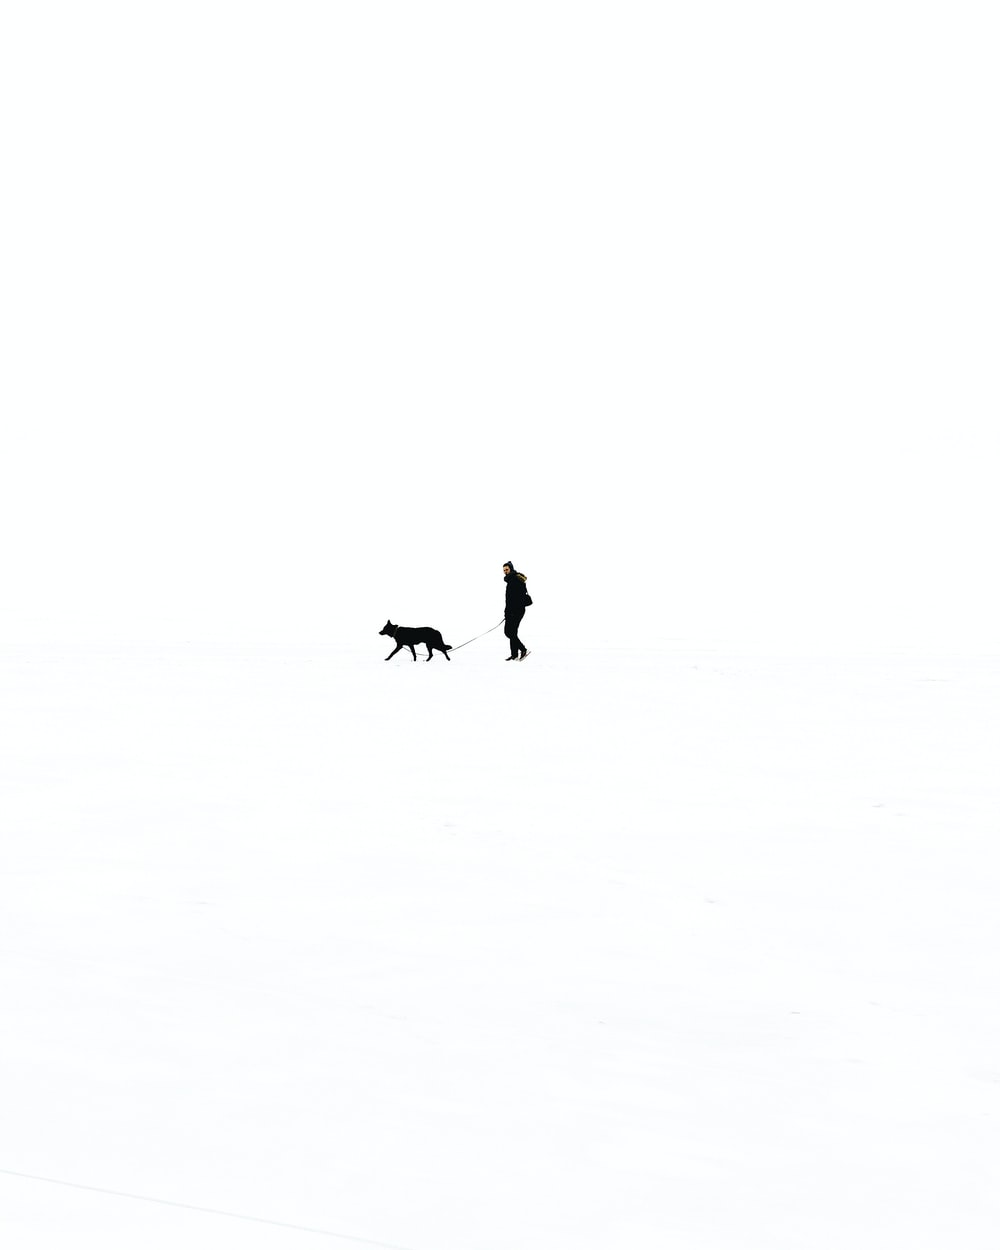 person walking with dog against black background